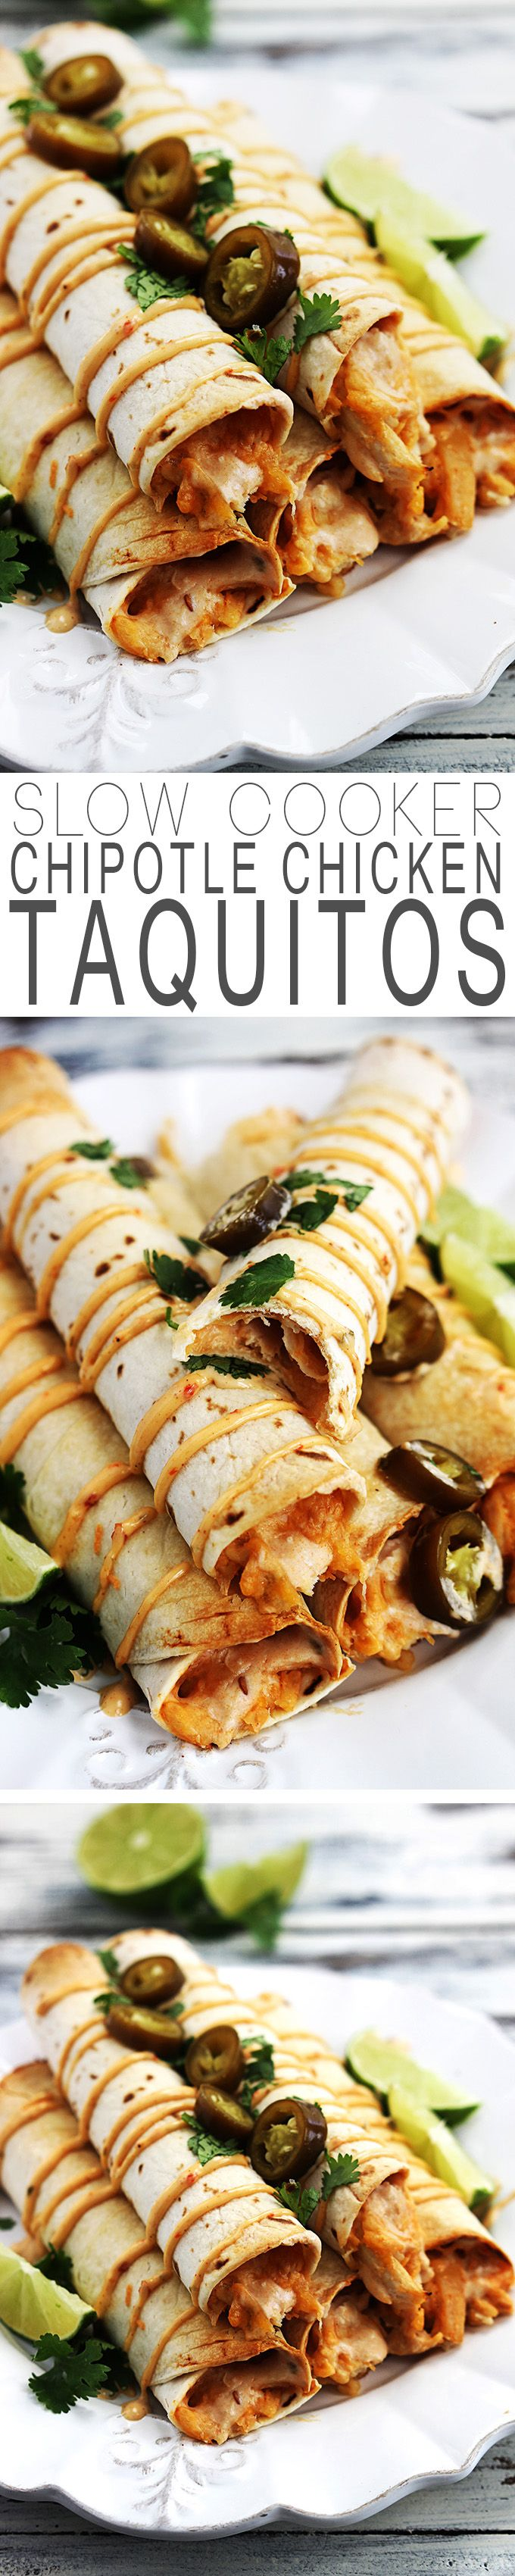 Creamy chicken taquitos with a spicy chipotle kick -- this is an easy slow cooker main dish or appetizer the whole family will love. http://lecremedelacrumb.com/2014/10/slow-cooker-creamy-chipotle-chicken-taquitos.html